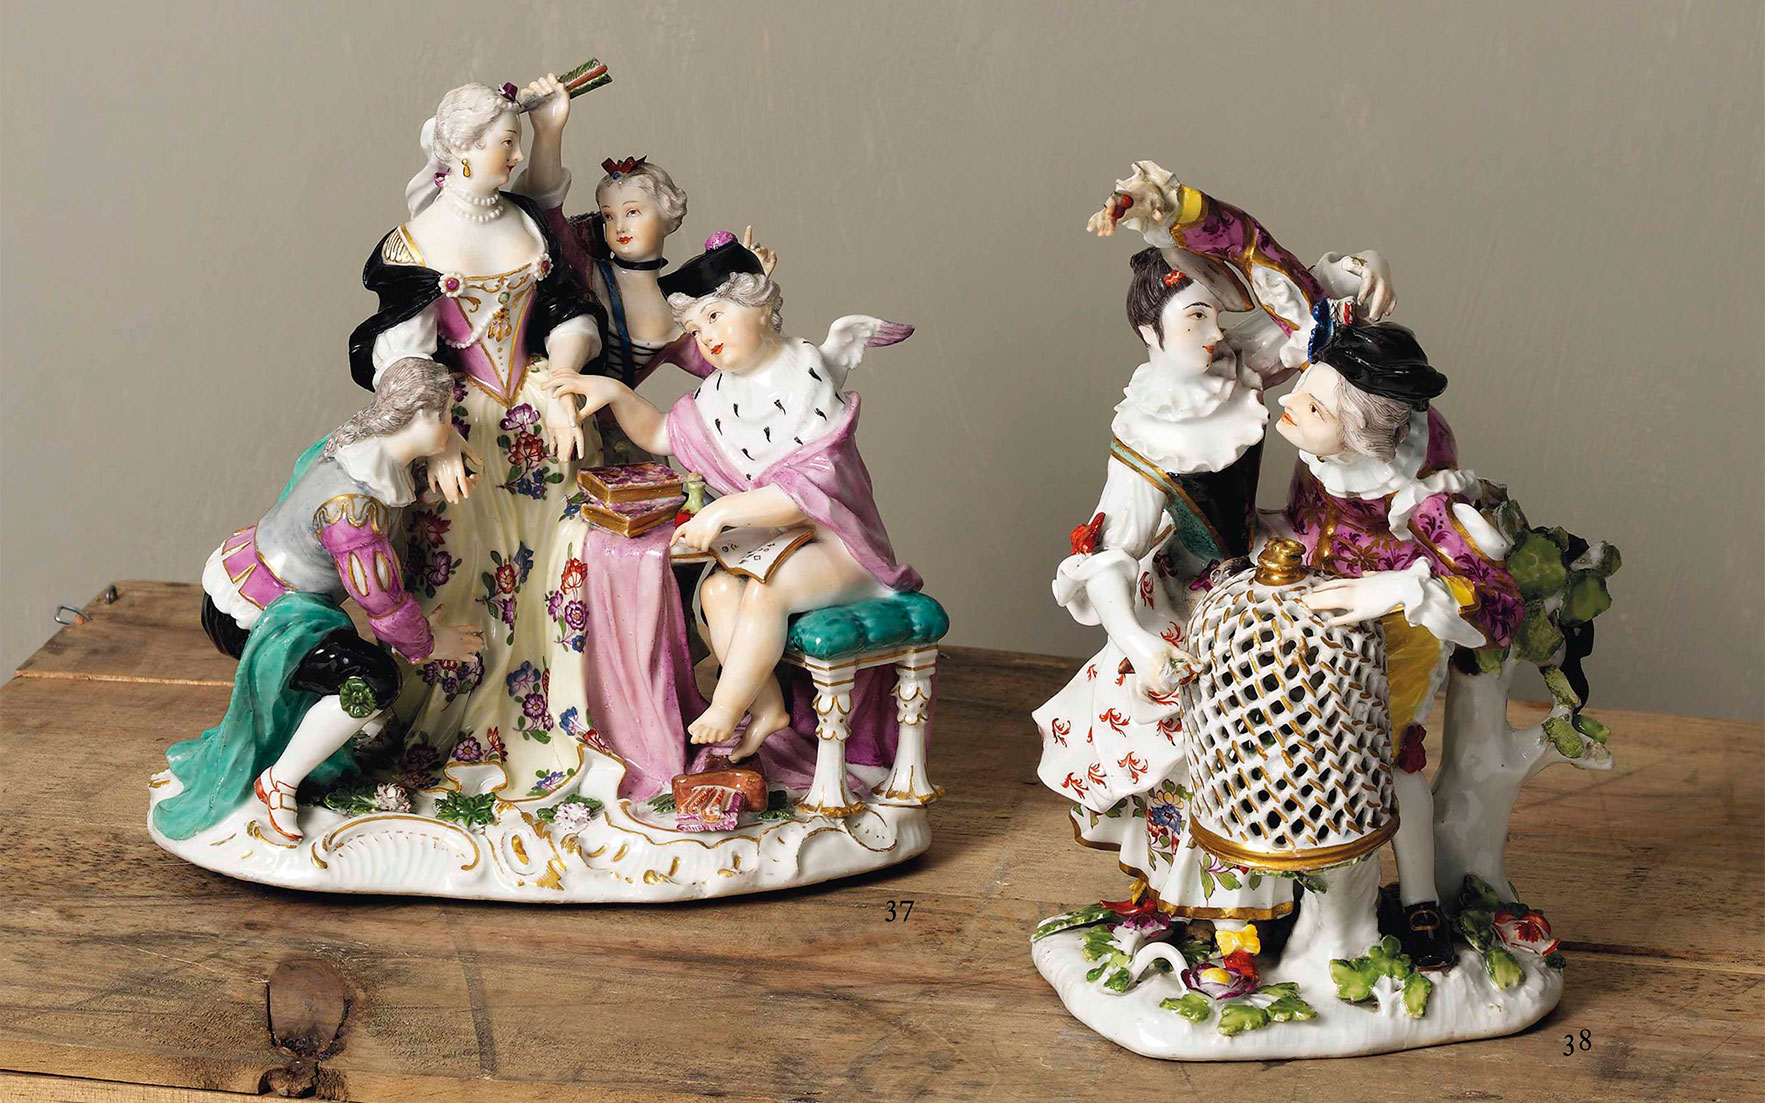 A Meissen group of Columbine and Scaramouche 'Die Hahnreigruppe', circa 1741-45. Sold for £92,500 on 2-3 June 2015        .full-screen .image-preview { background-position 50% 0%!important; } @media